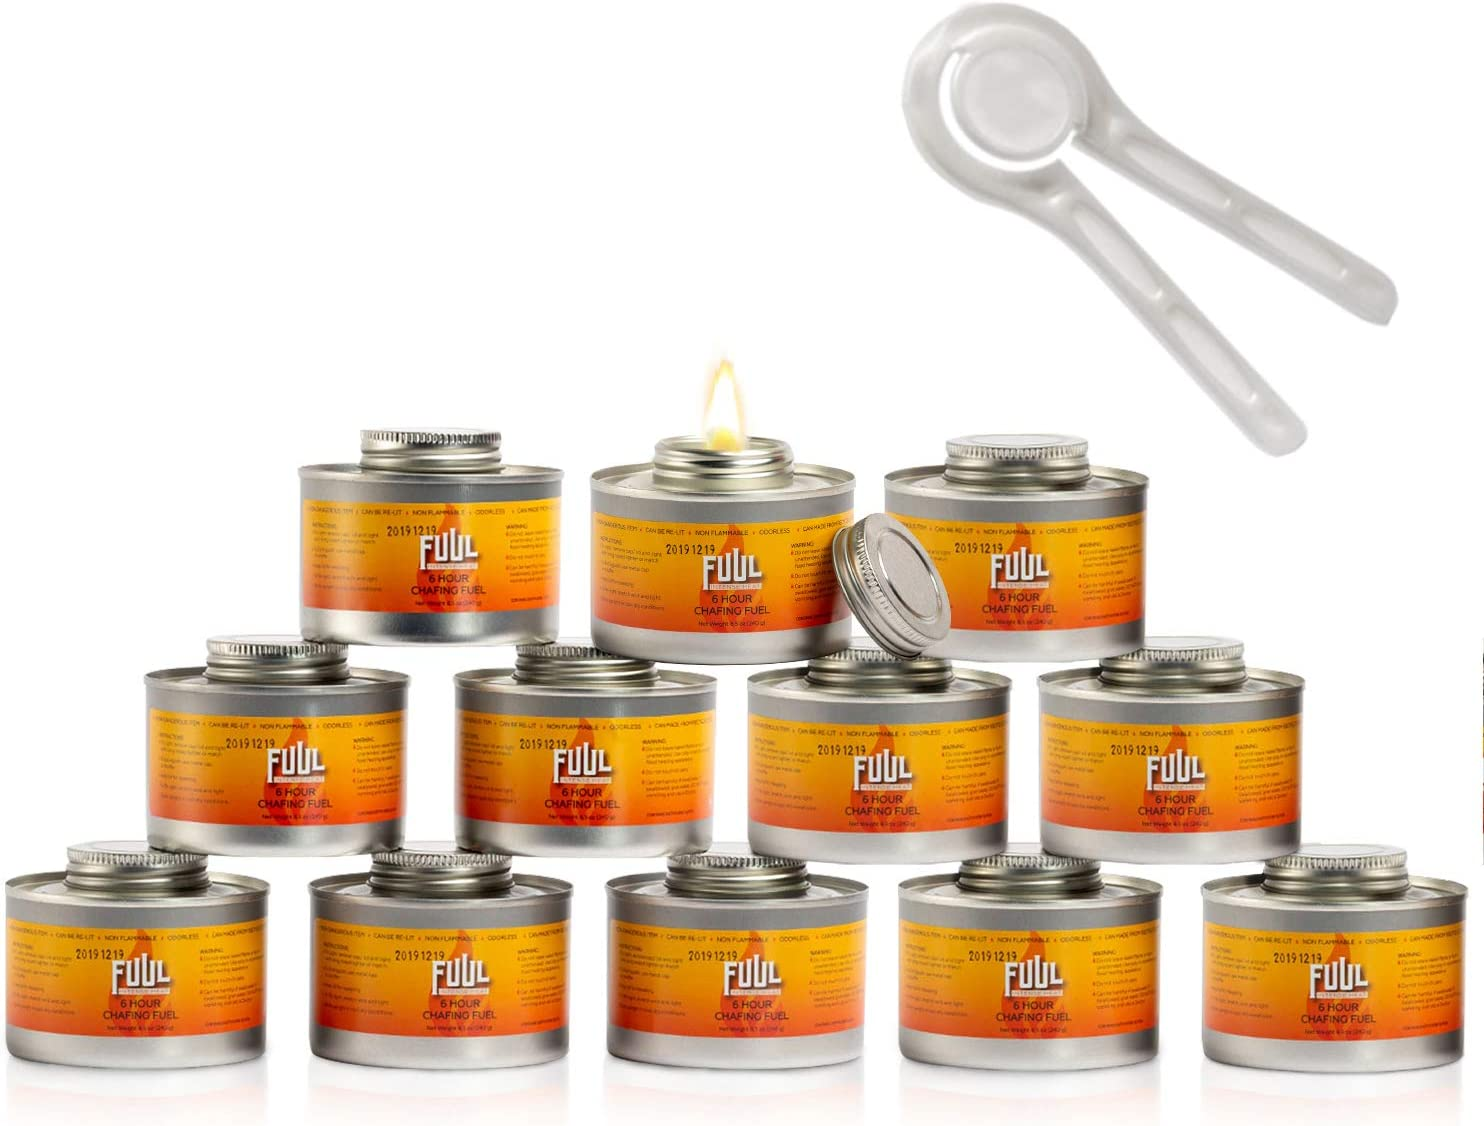 6 Hour Chafing Fuel | 12-Pack Sterno Cans for Chafing Dishes | Premium Food Warming Wick Set with Lid Opener | Burner Cans With Steady, Controlled Flame